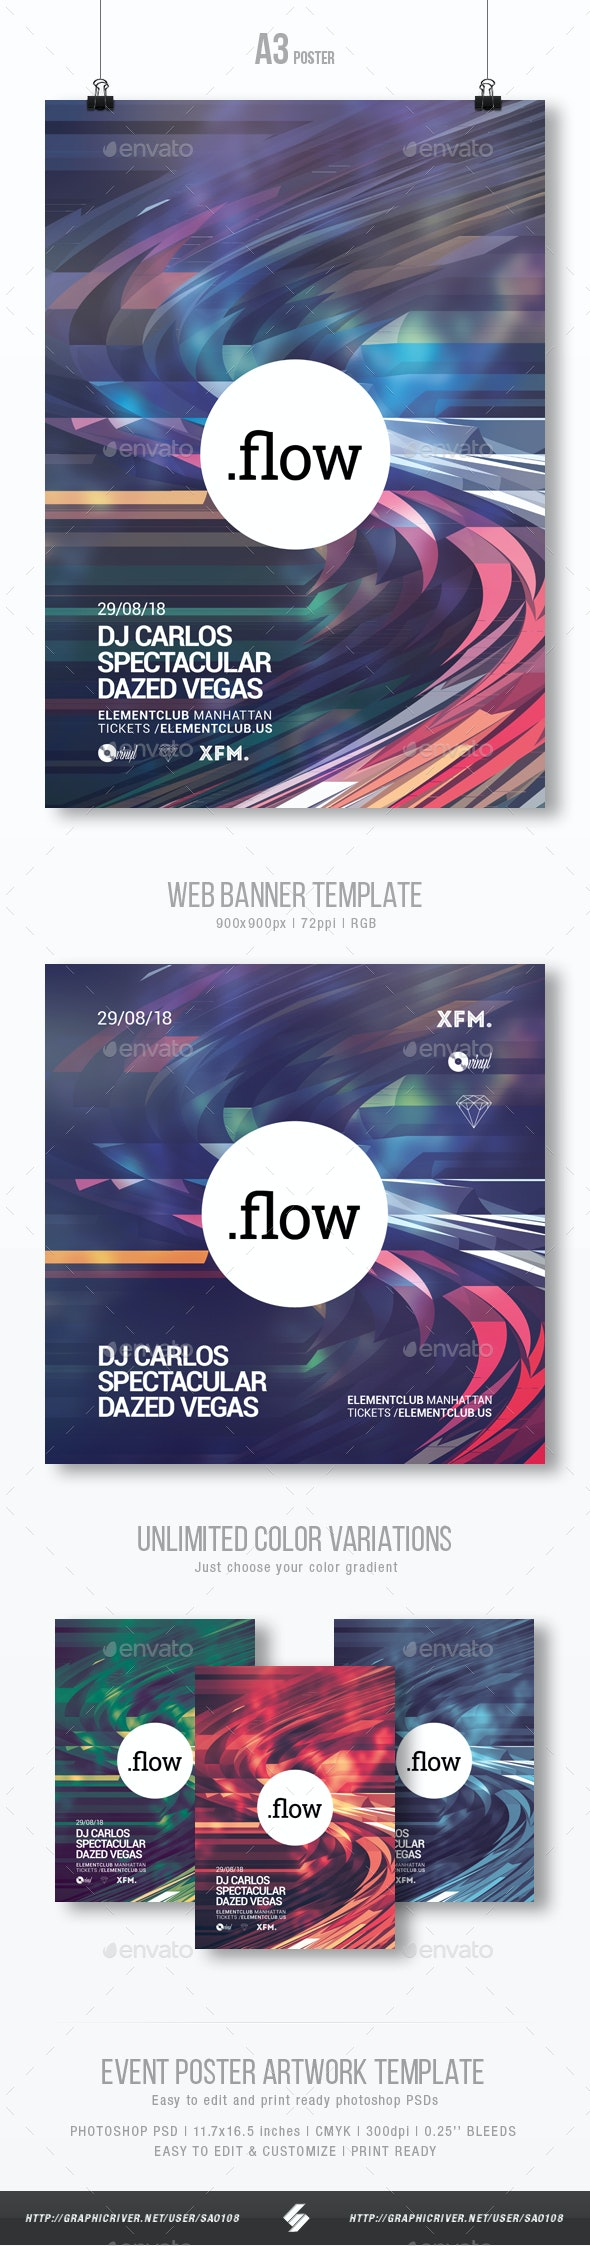 Flow - Minimal Party Flyer / Poster Artwork Template A3 - Clubs & Parties Events